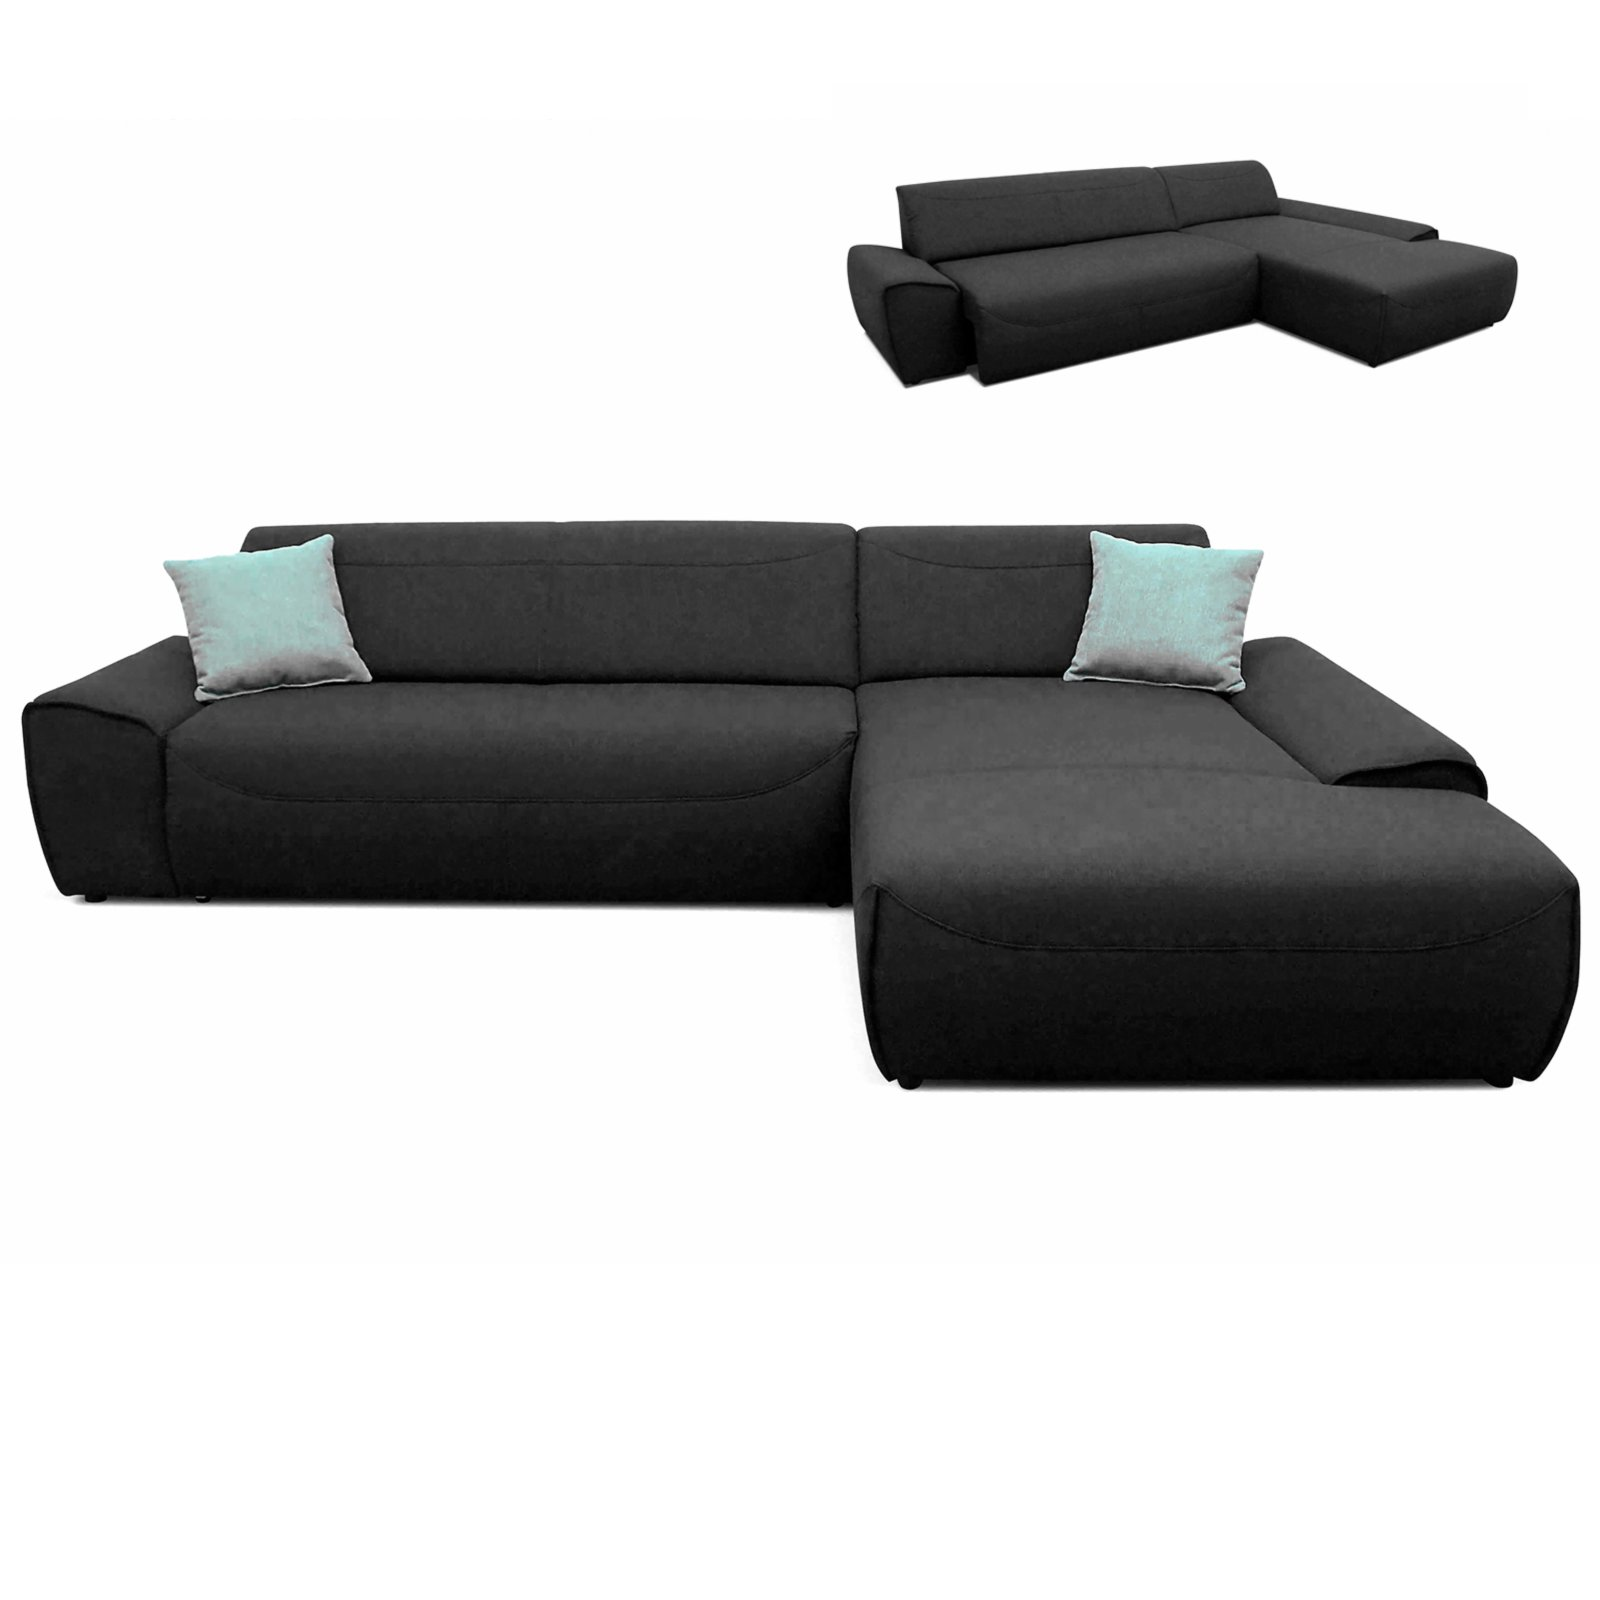 ecksofa anthrazit sitzauszug links ecksofas l form. Black Bedroom Furniture Sets. Home Design Ideas